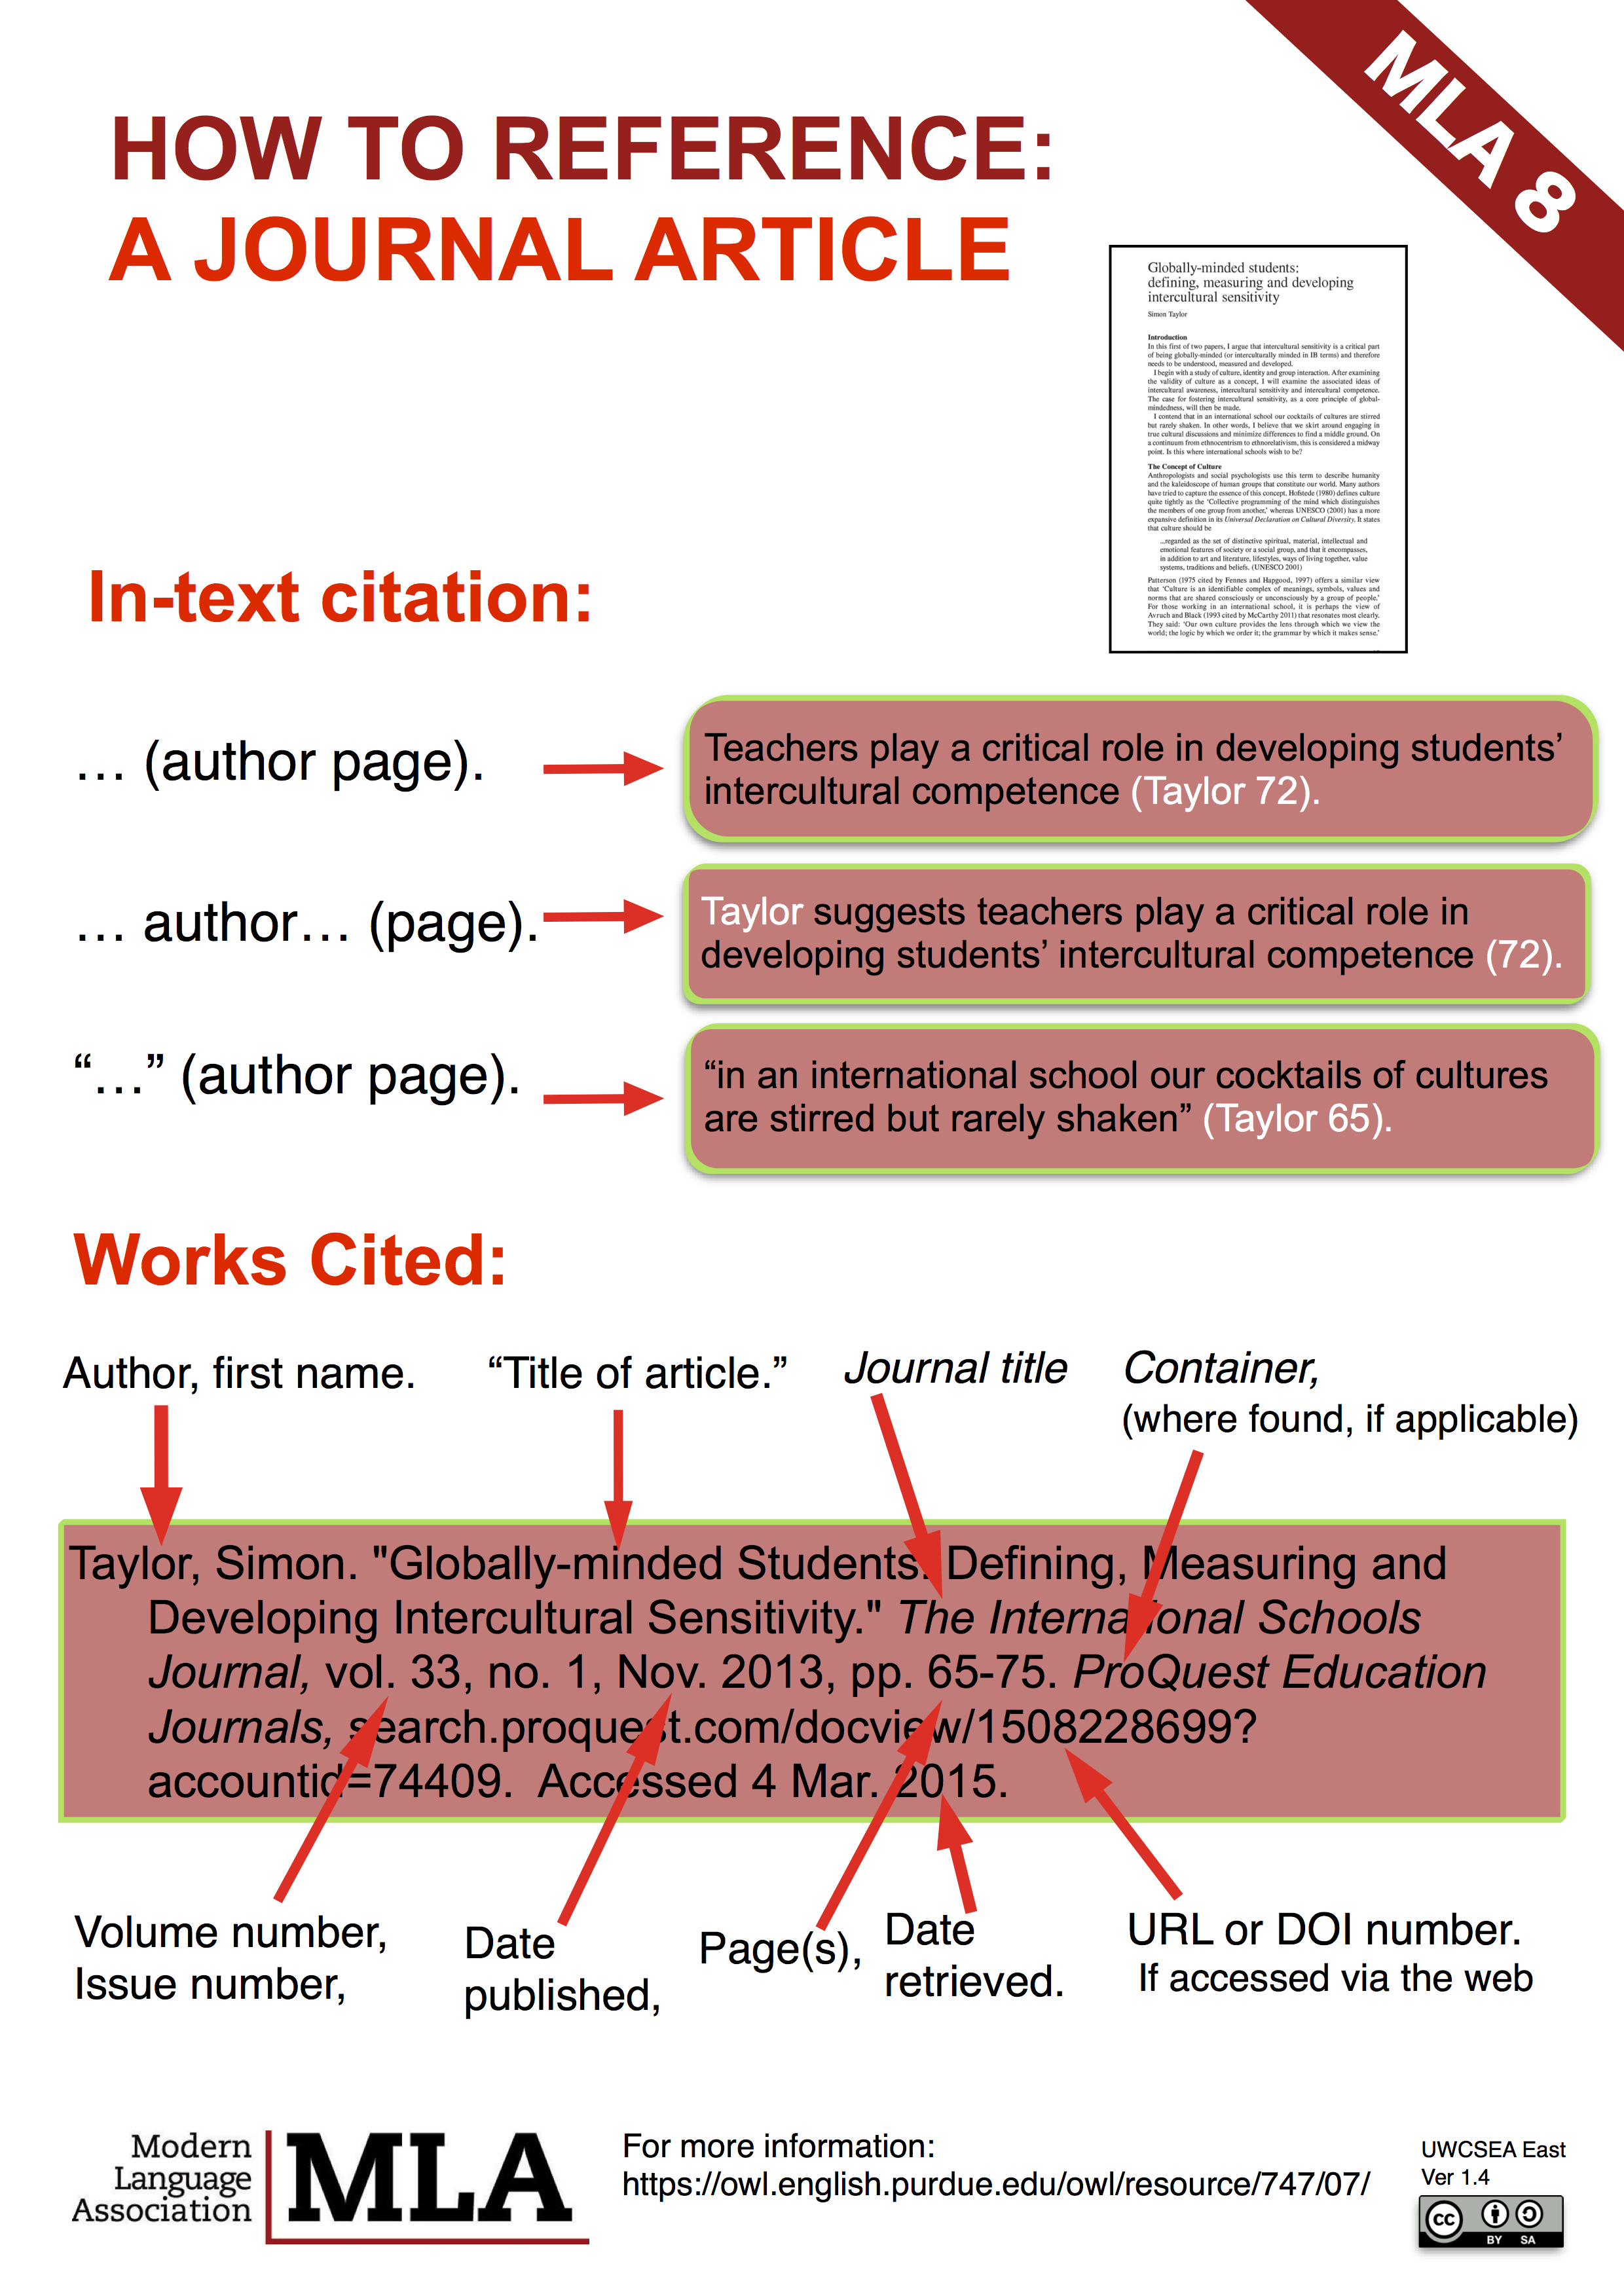 A Guide To Citation Following The Mla8 Format Includes In